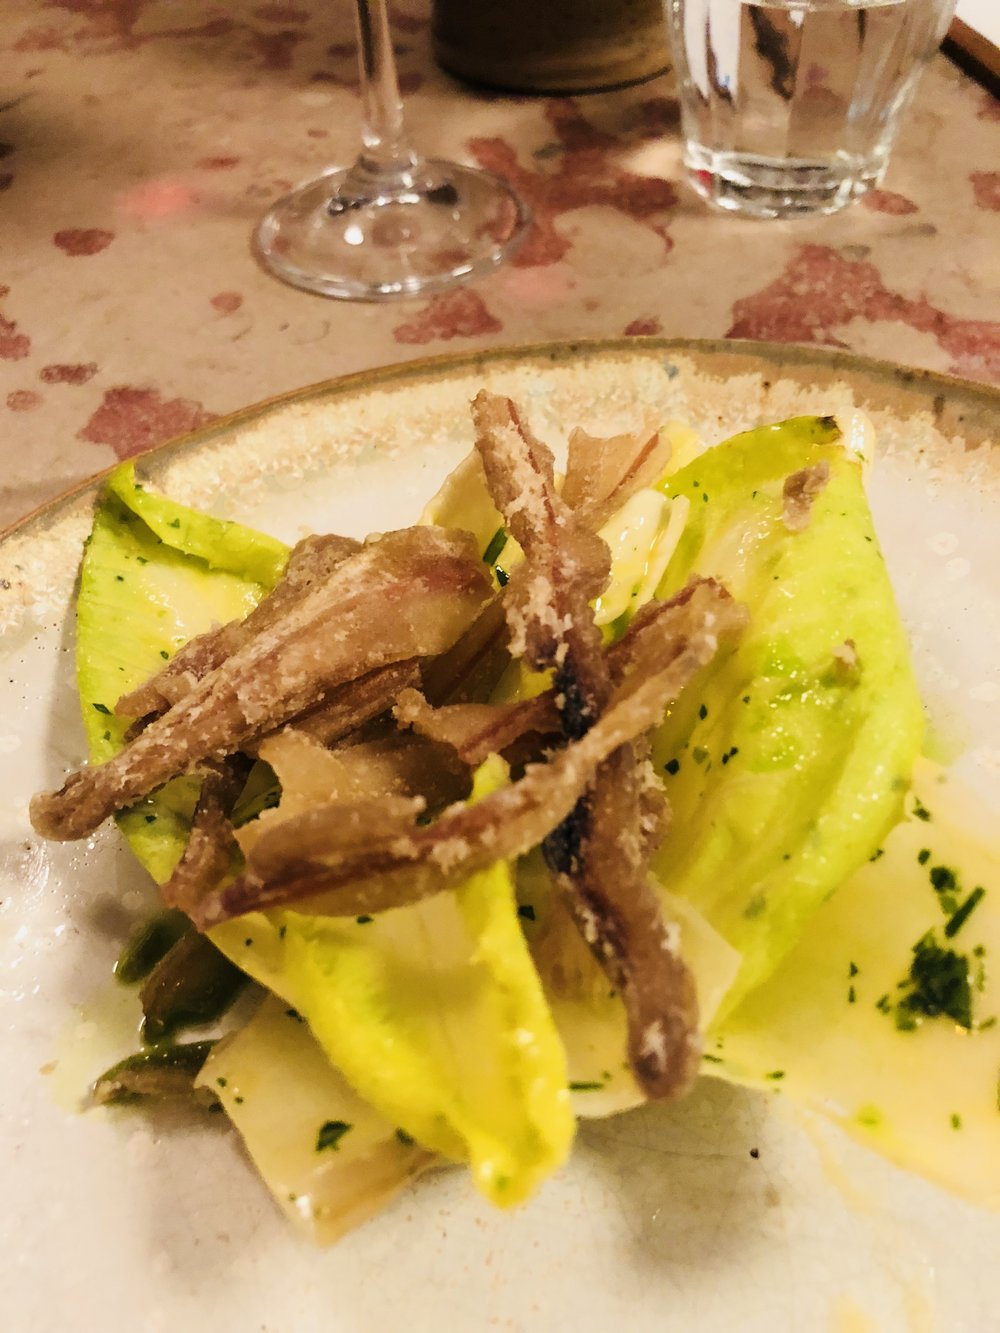 Crispy Pig Ear Salad with Lettuce and Mustard